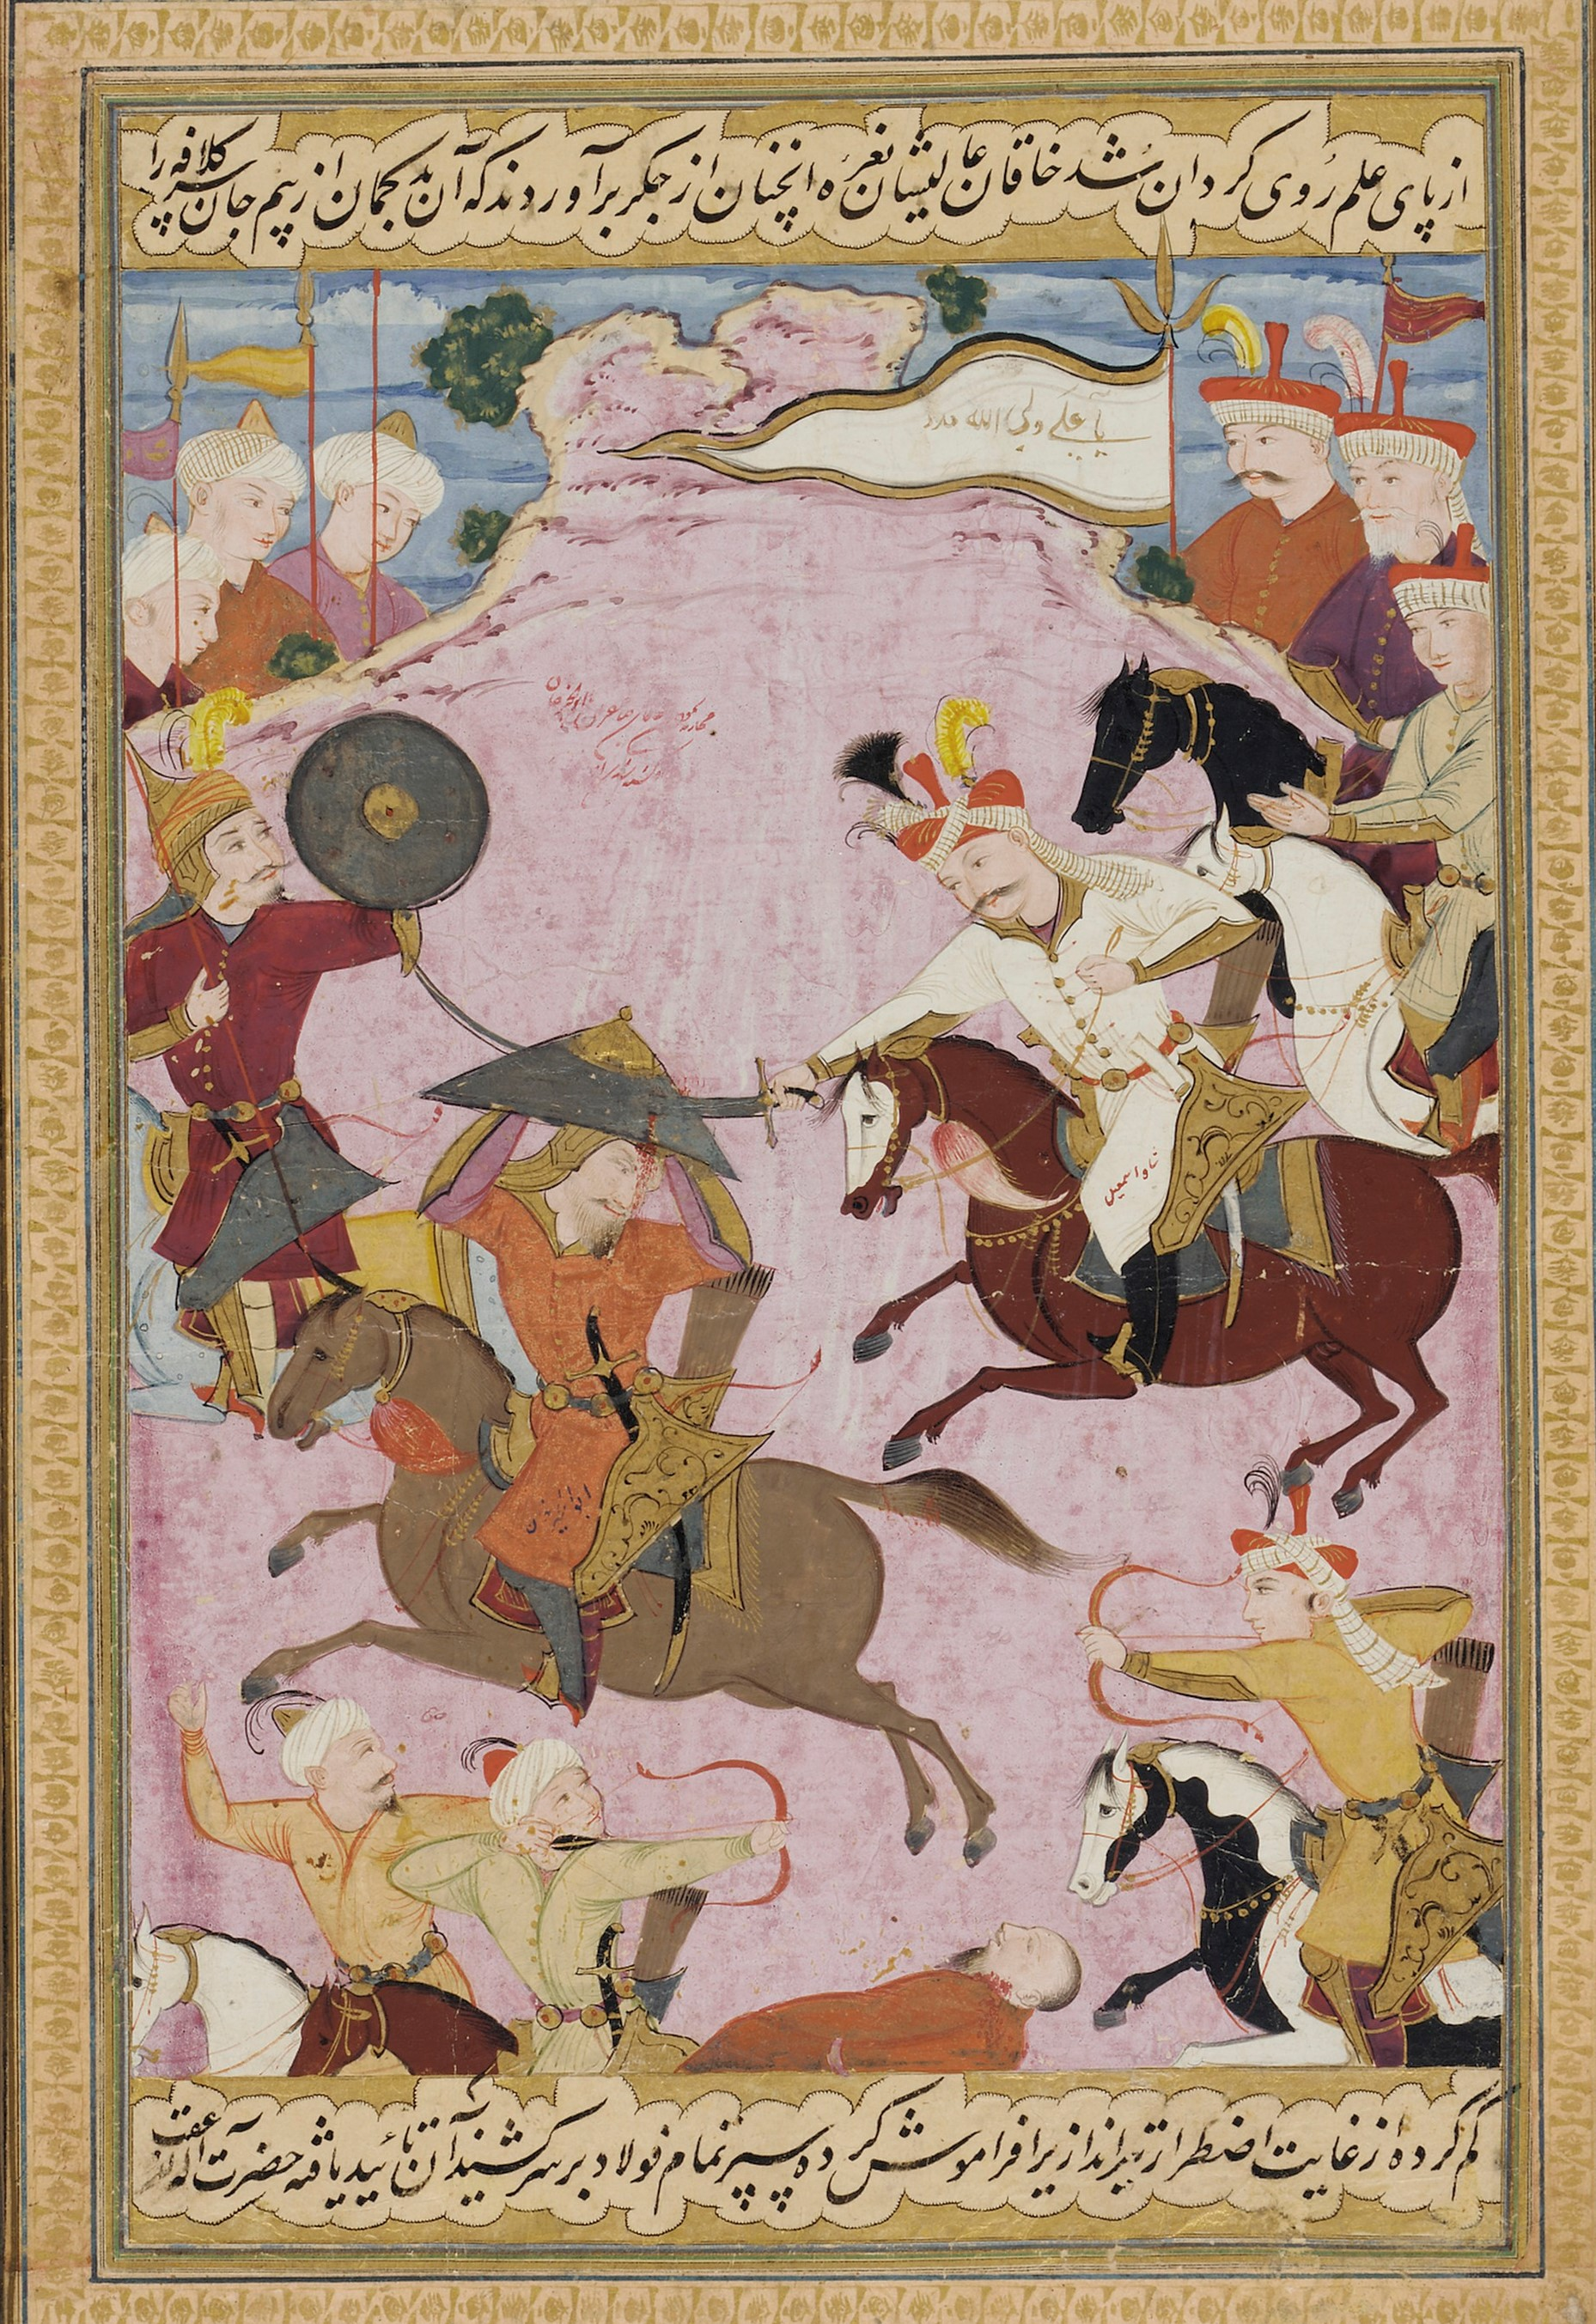 https://i0.wp.com/upload.wikimedia.org/wikipedia/commons/5/57/The_Battle_between_Shah_Ismail_and_Shaybani_Khan.jpg